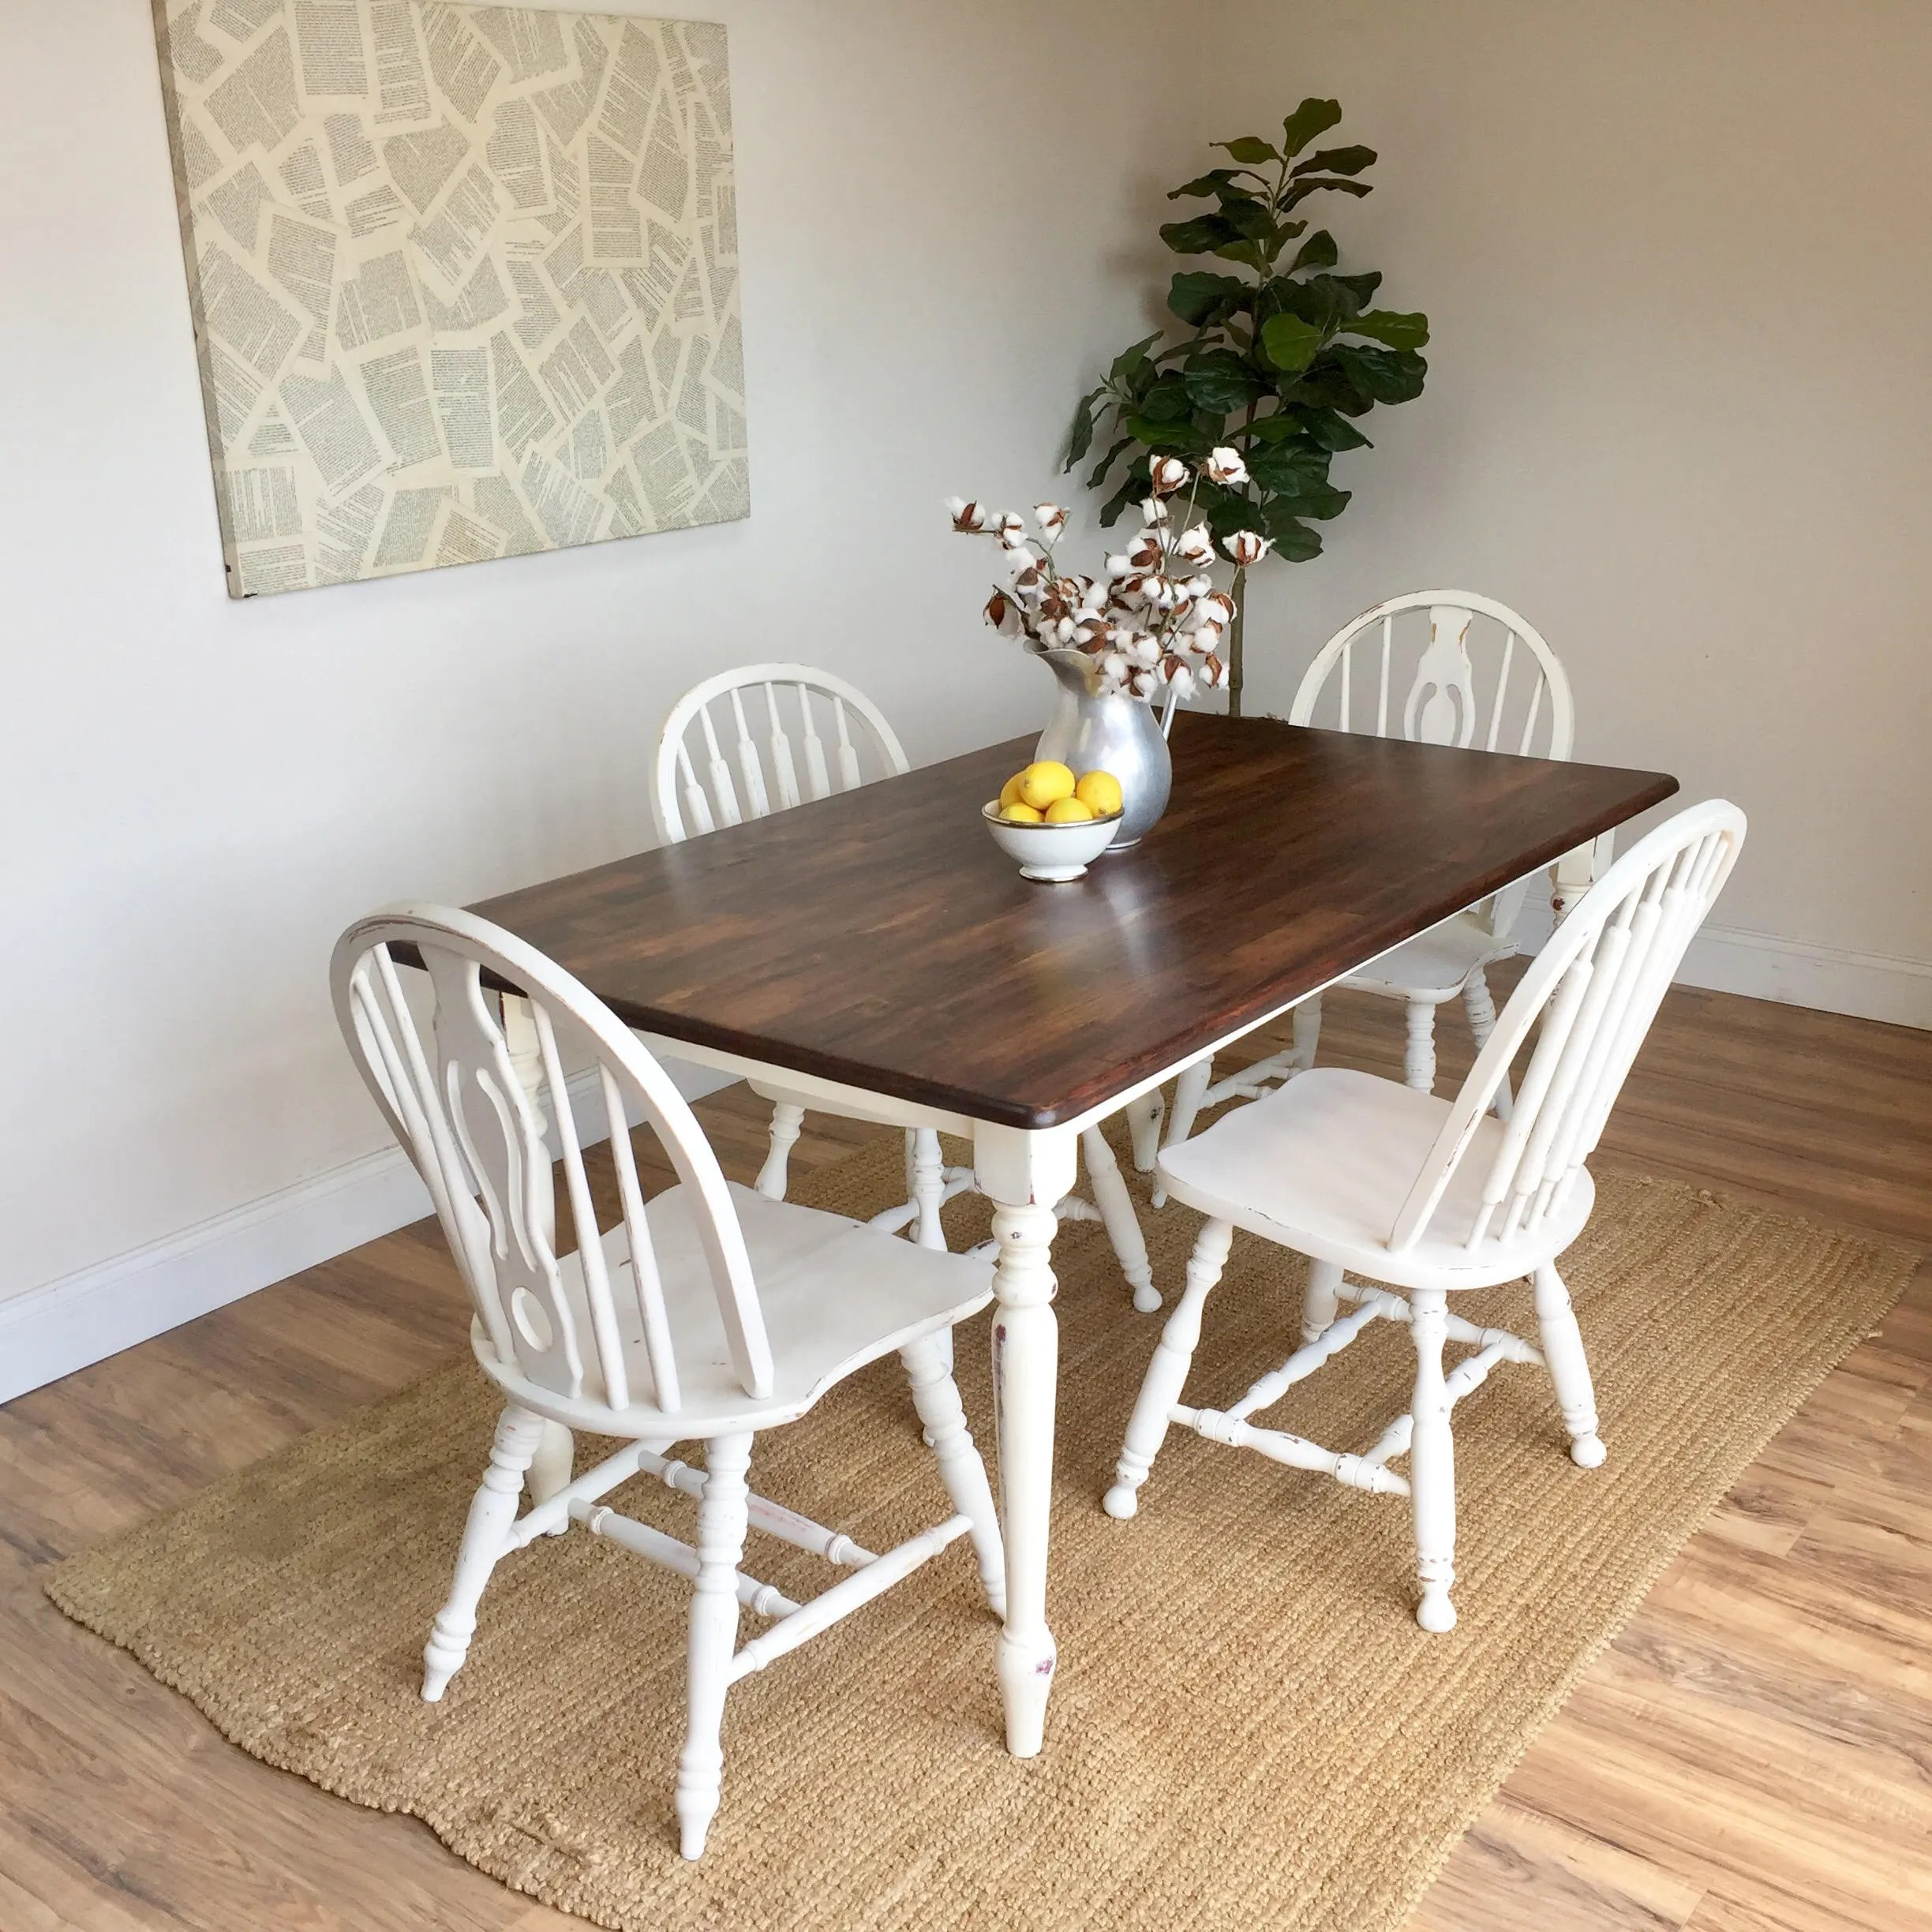 white distressed dining chairs wood rocking chair nursery kitchen table small